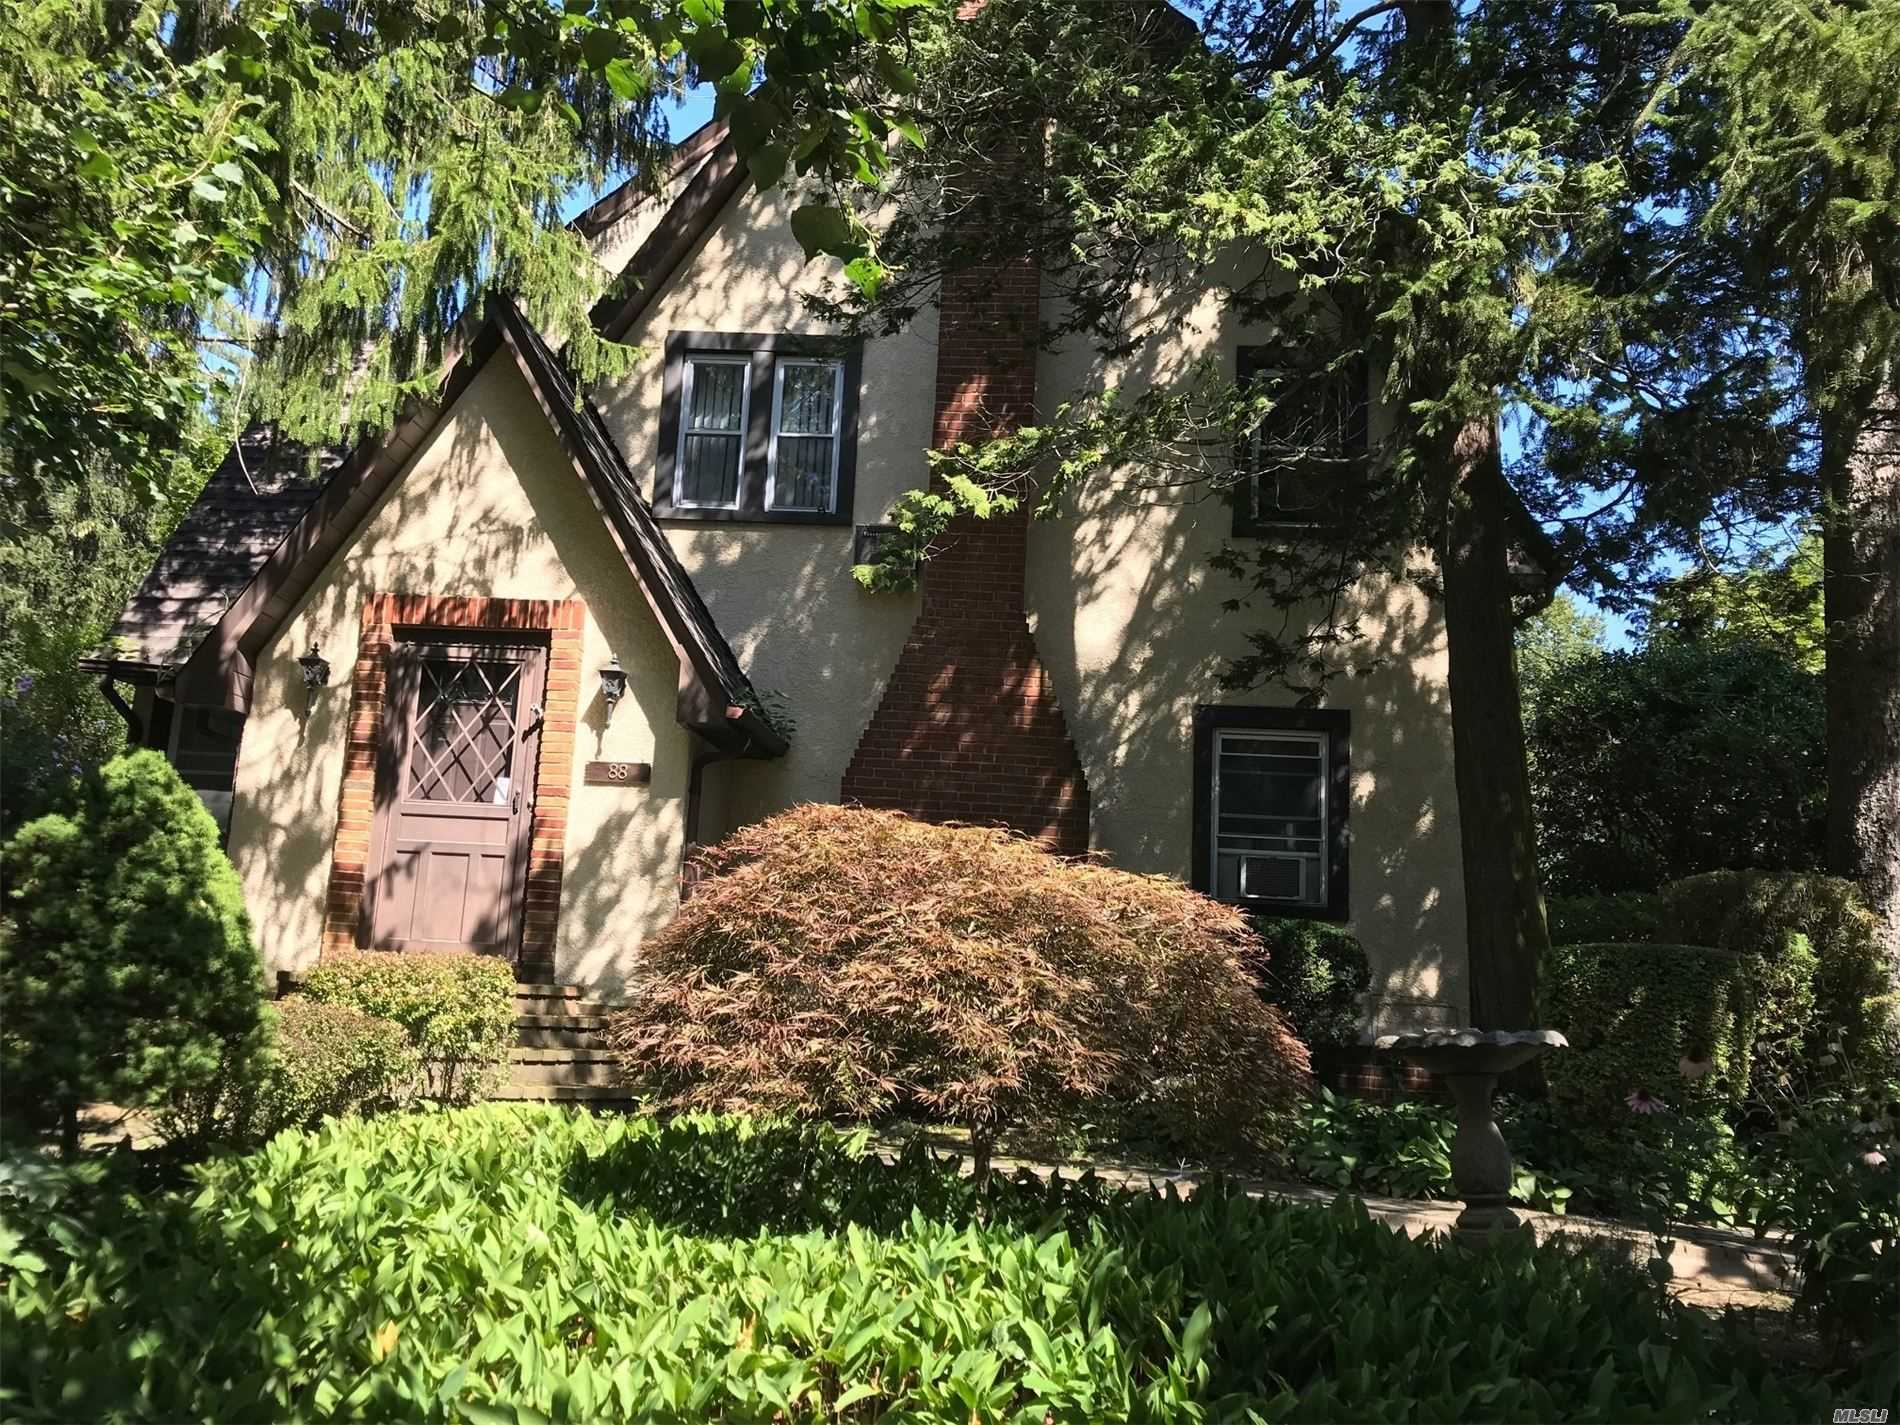 Charm & grace enhance the beautiful bones of this 3 BR Tudor. Large LR w/fireplace, spacious Eat-in-Kitchen and Formal Dining Room. Master Suite with dressing area and lots of closet space. Landscaped grounds. North Shore Schools, beach privileges. Don't miss this one!